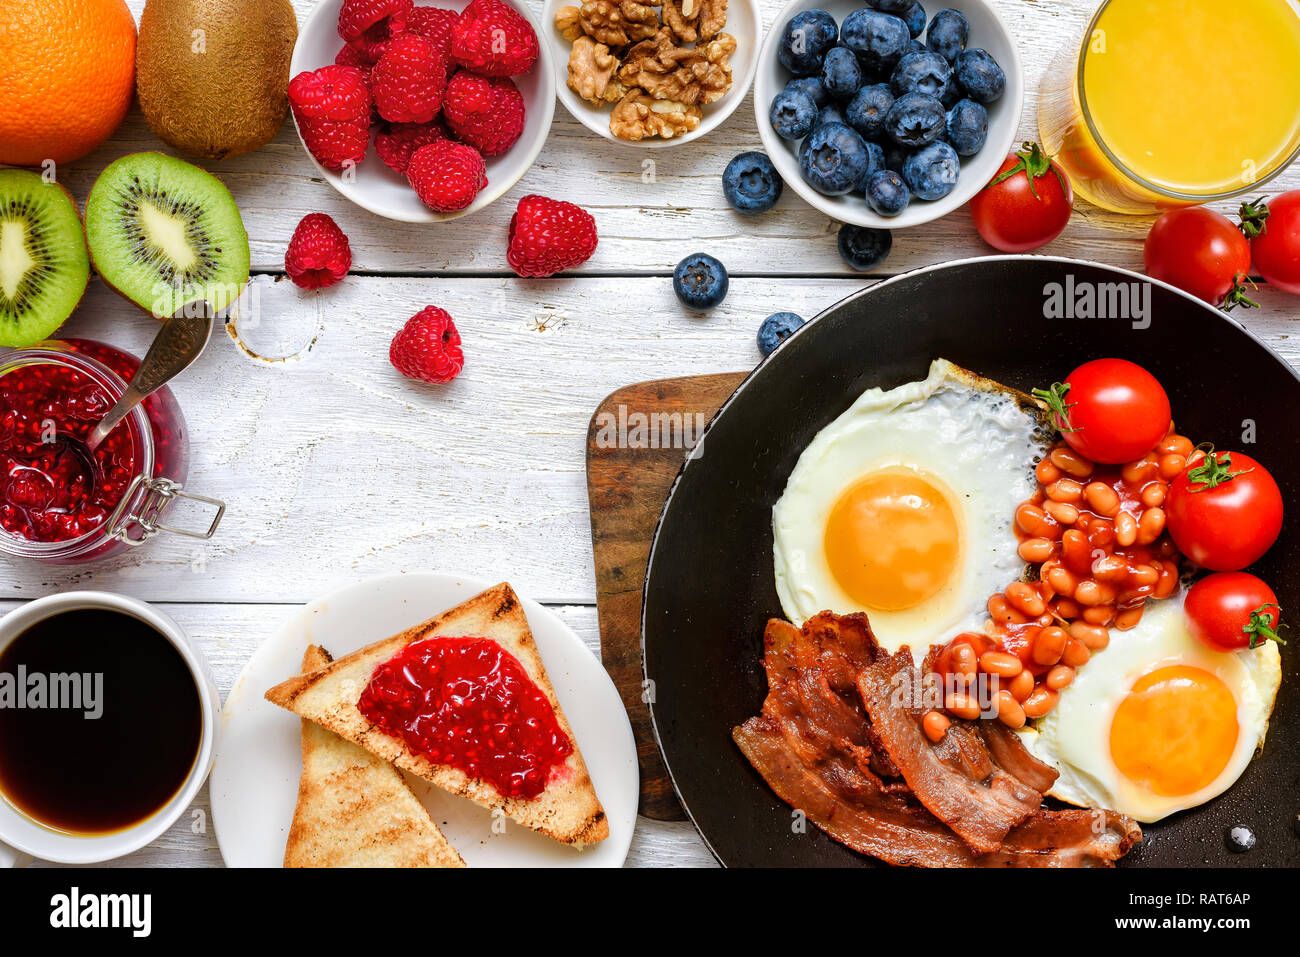 English breakfast - fried egg, beans, tomatoes, coffee, bacon and toast with orange juice, fresh fruits and berries. Top view - Stock Image